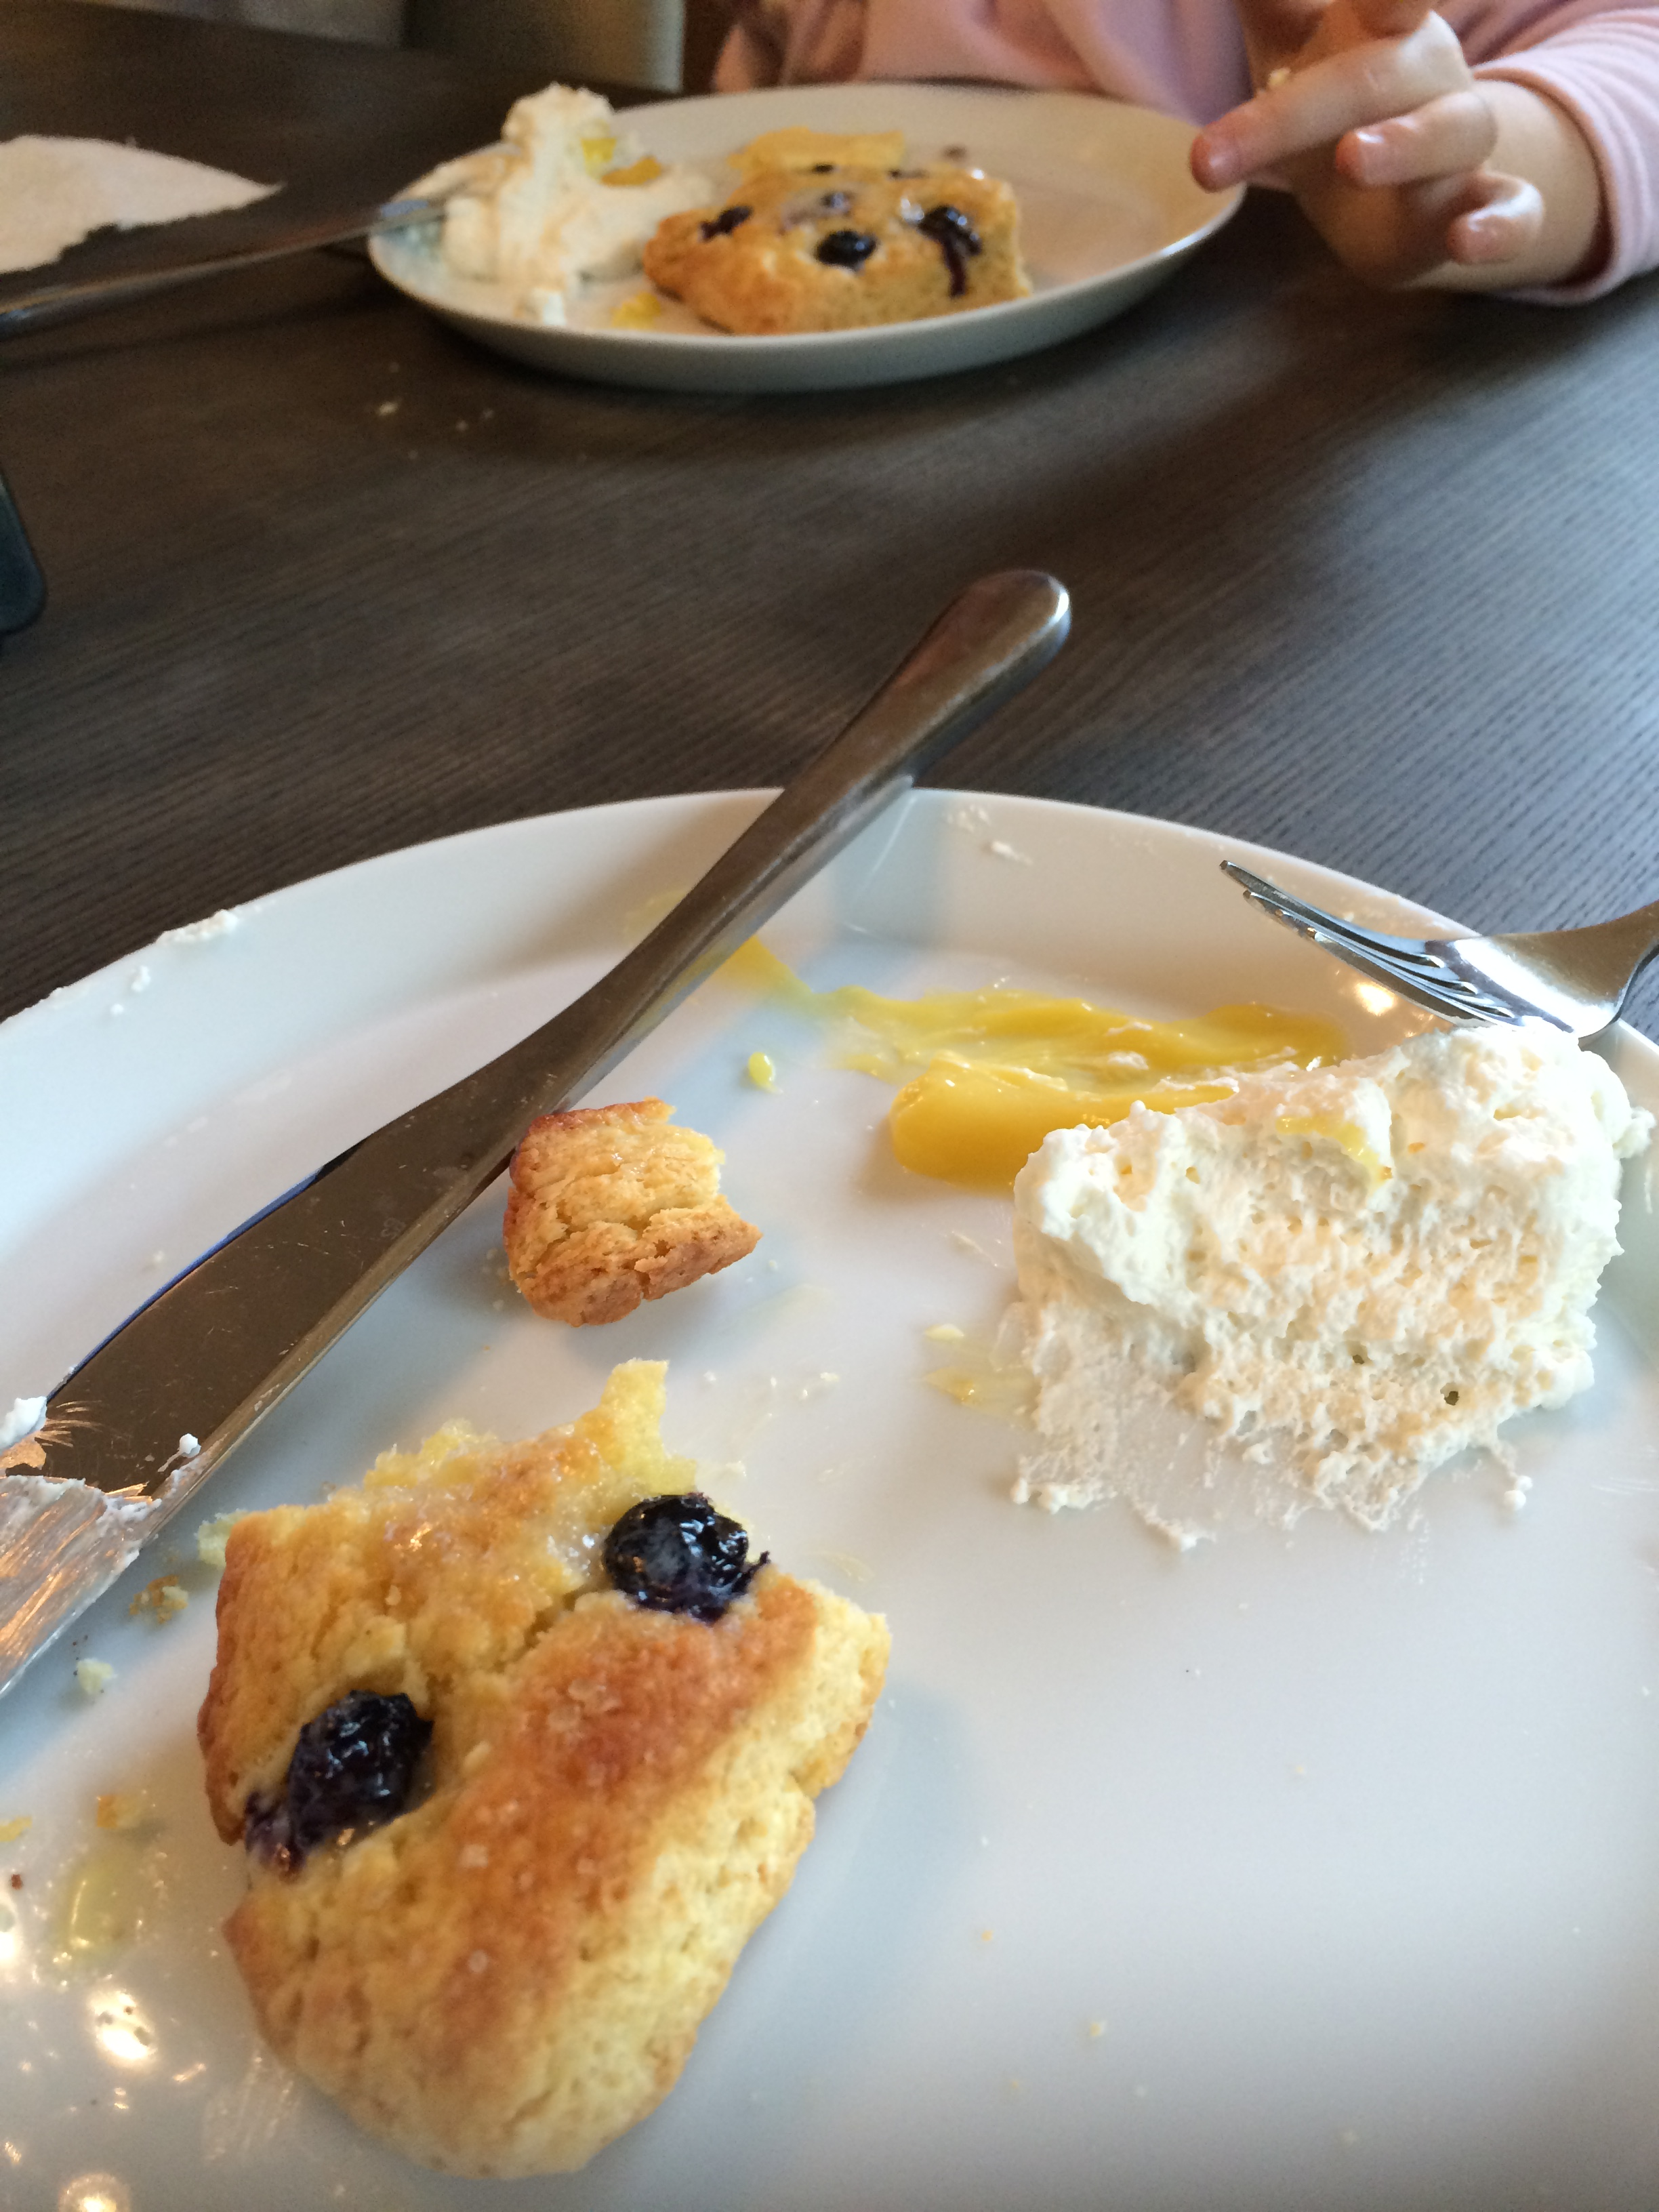 My daughter and I used to sit on the patio in our pajamas   and eat these blueberry-lemon scones just from the oven while we sipped our warm tea and looked out over the lake.  They are dreamy with fresh lemon curd and cream too!